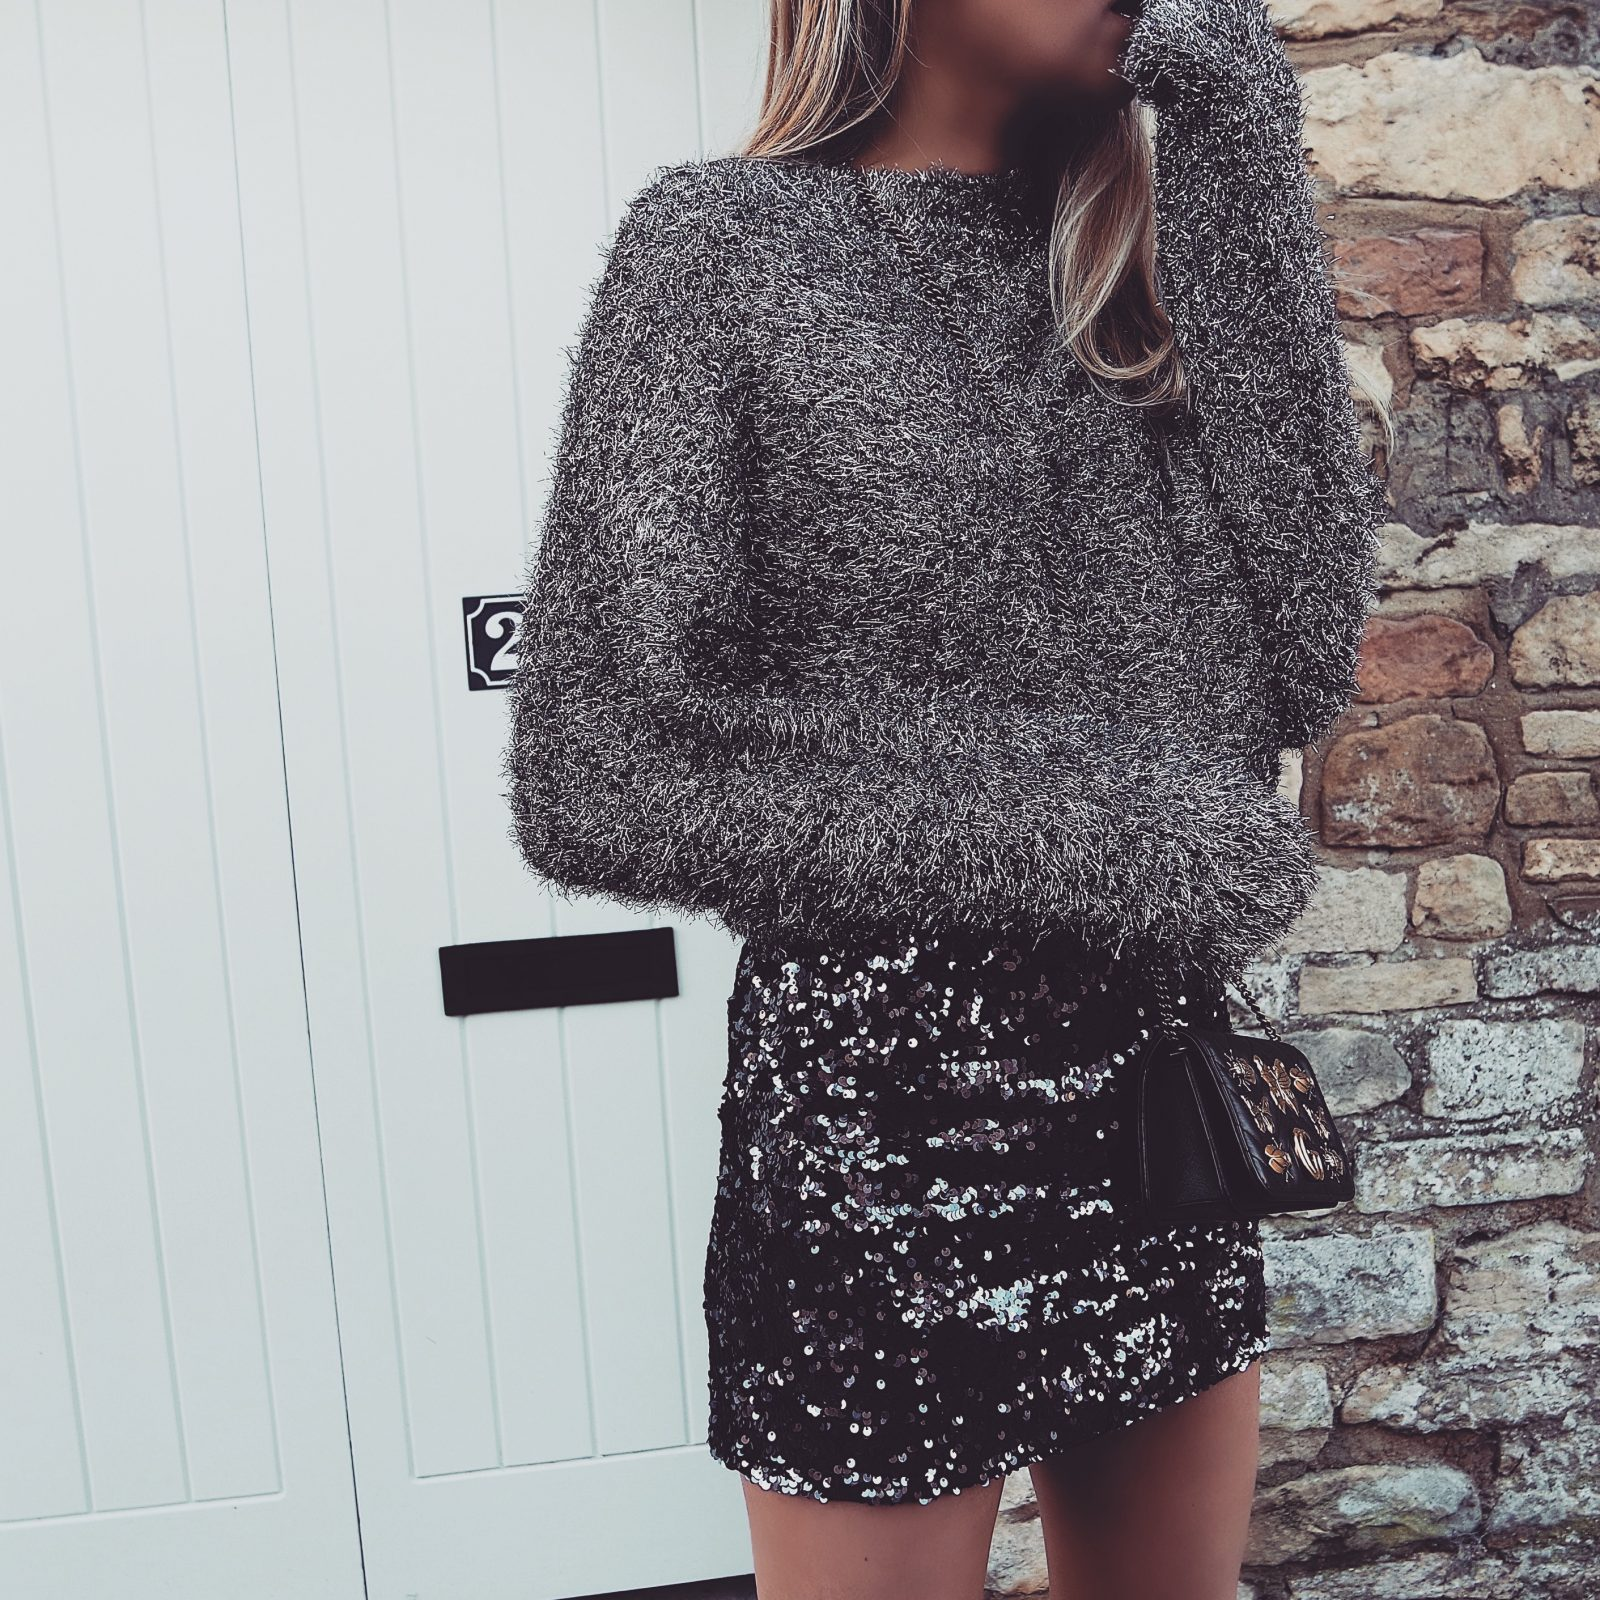 Christmas Party Outfit Ideas - Silver Christmas Jumper